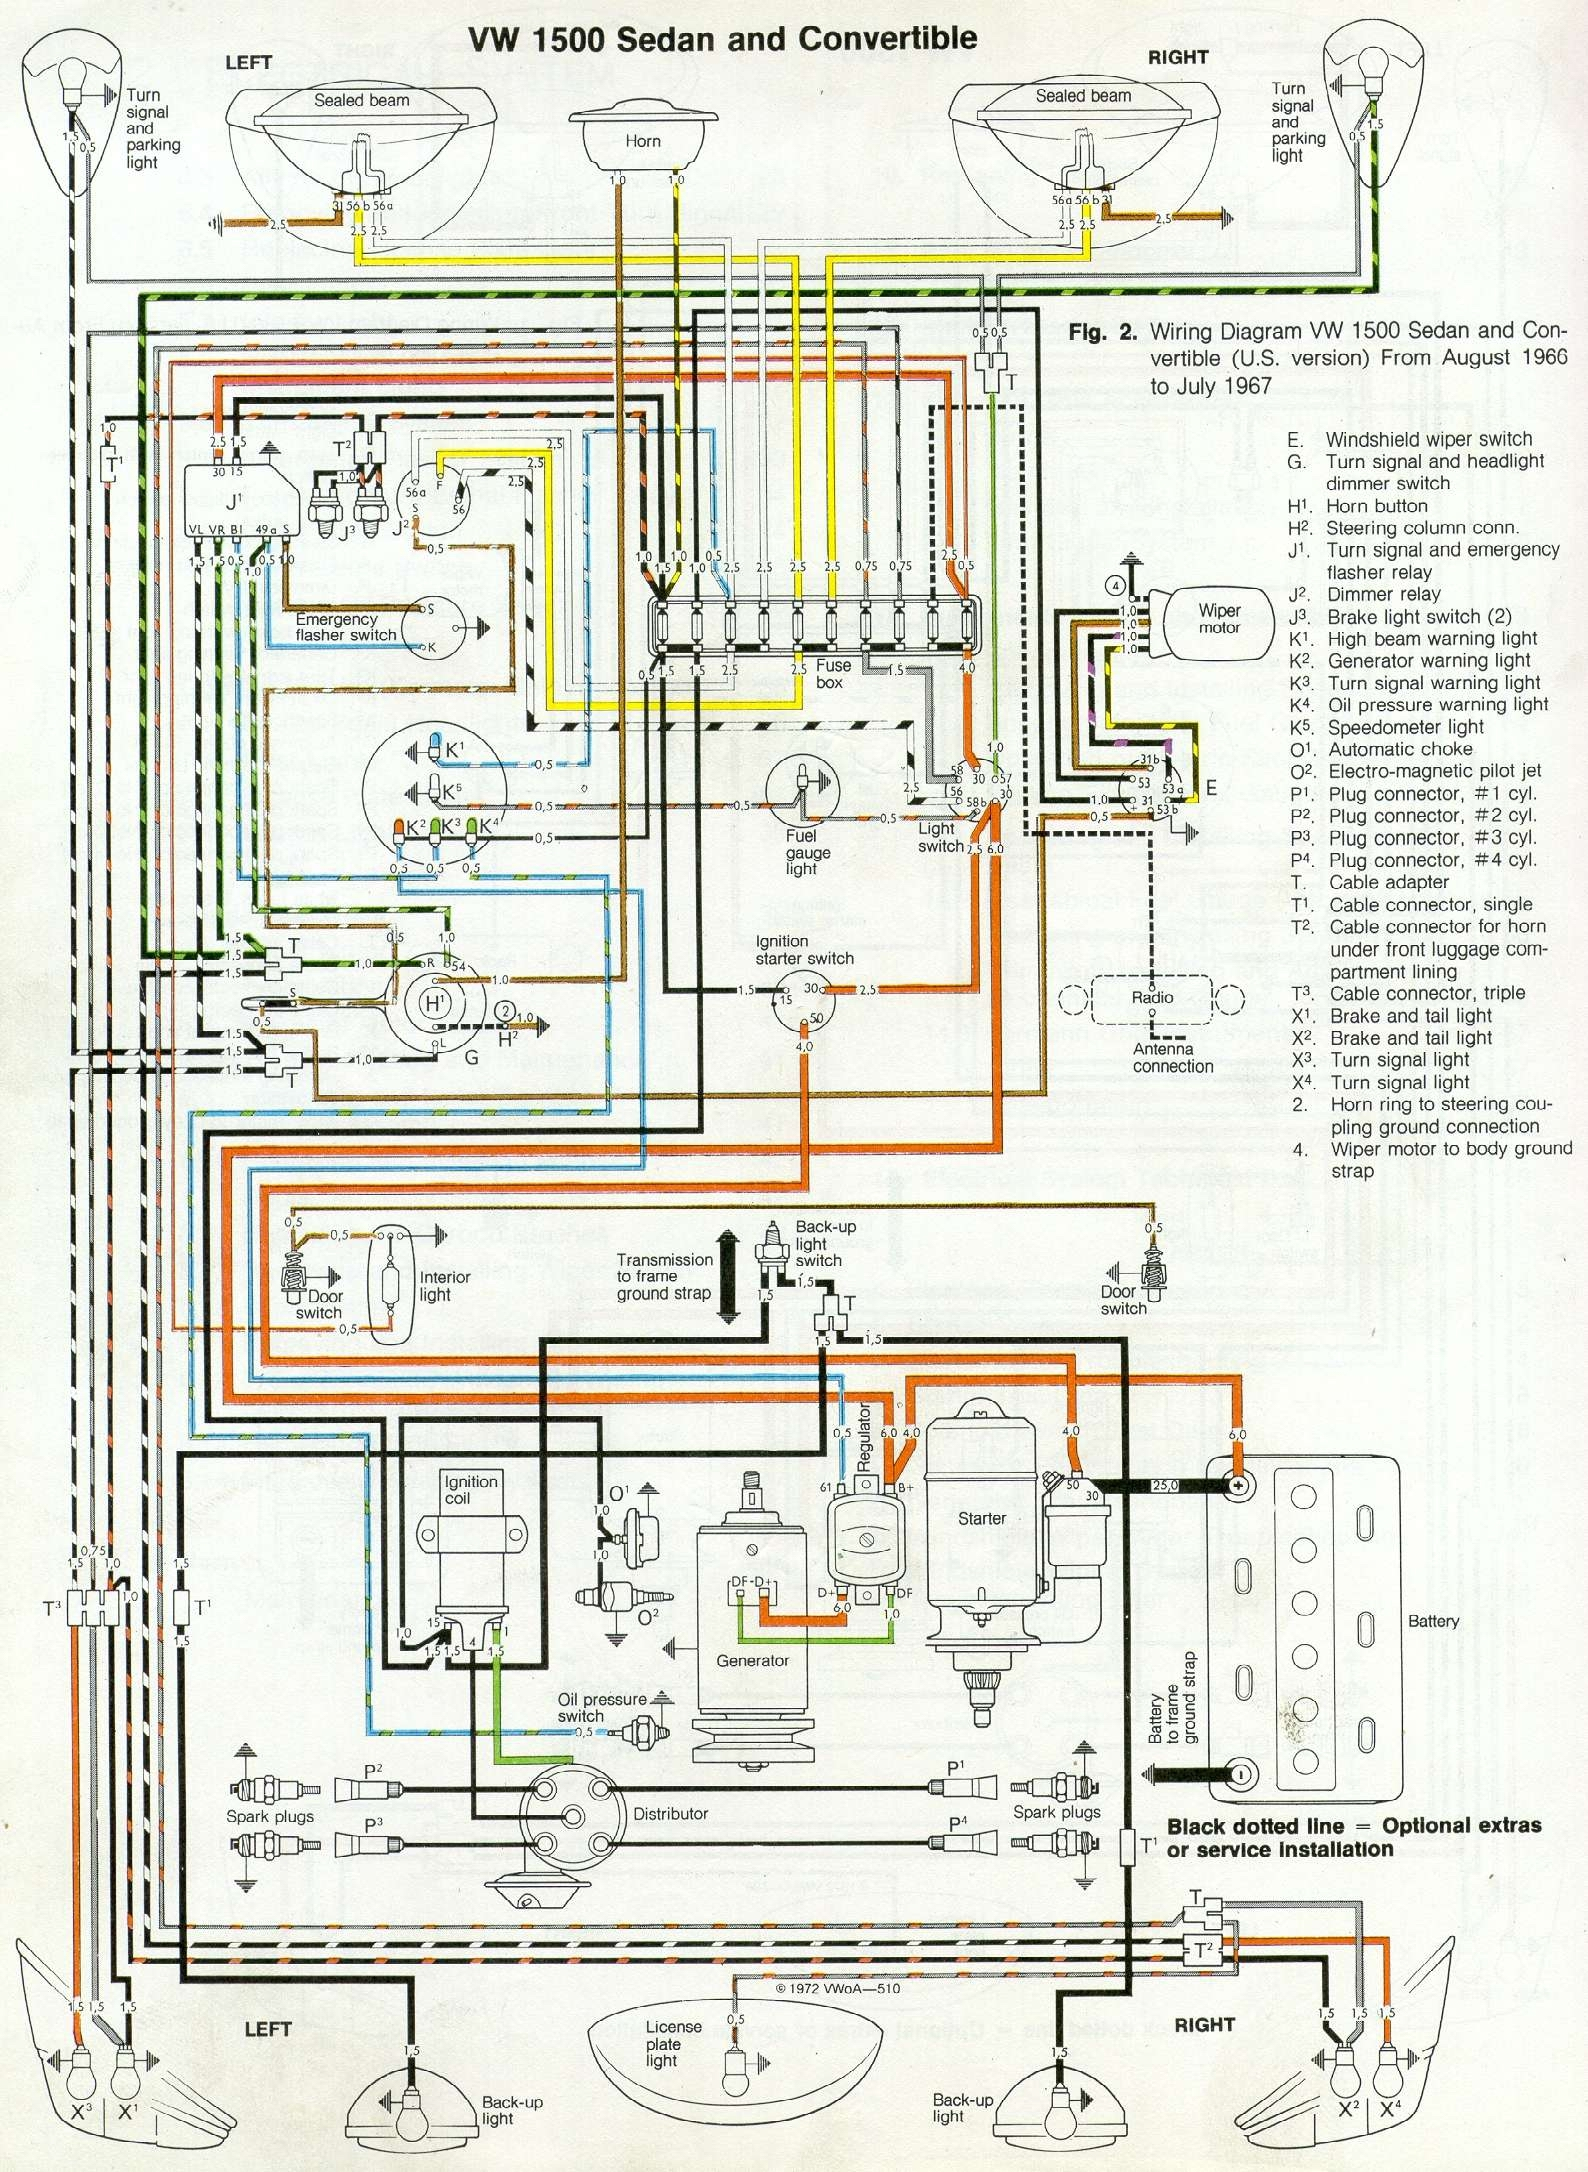 66 And '67 Vw Beetle Wiring Diagram 1967 Vw Beetle 1967 Dodge Wiring Diagram  1967 Vw Wiring Diagram